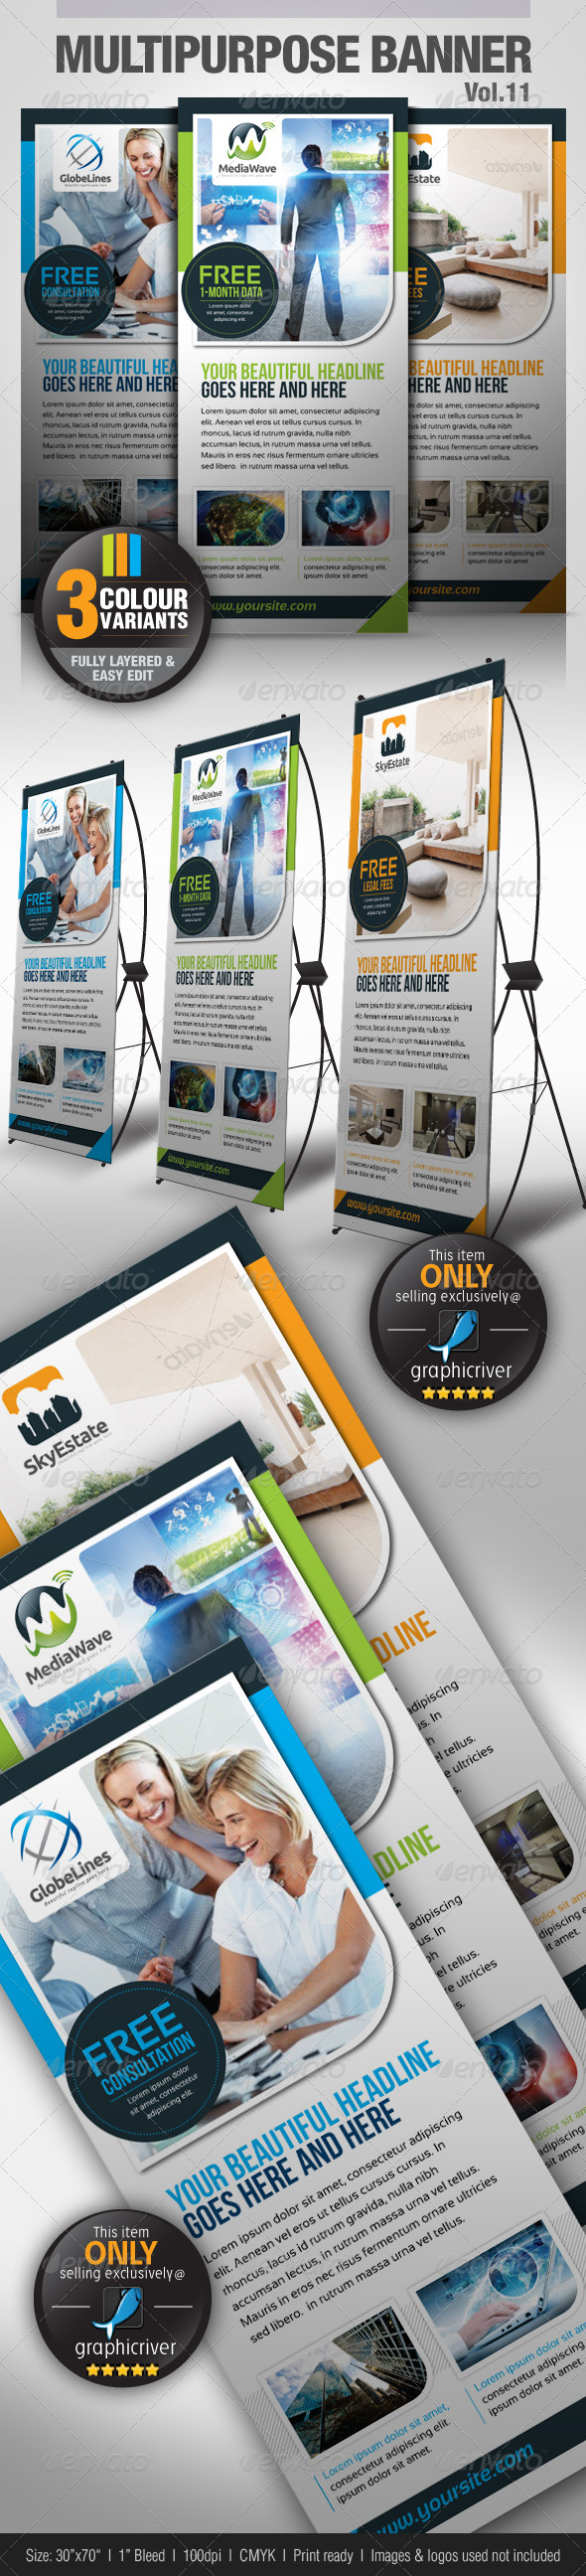 GraphicRiver Multipurpose Banner Vol.11 4604058